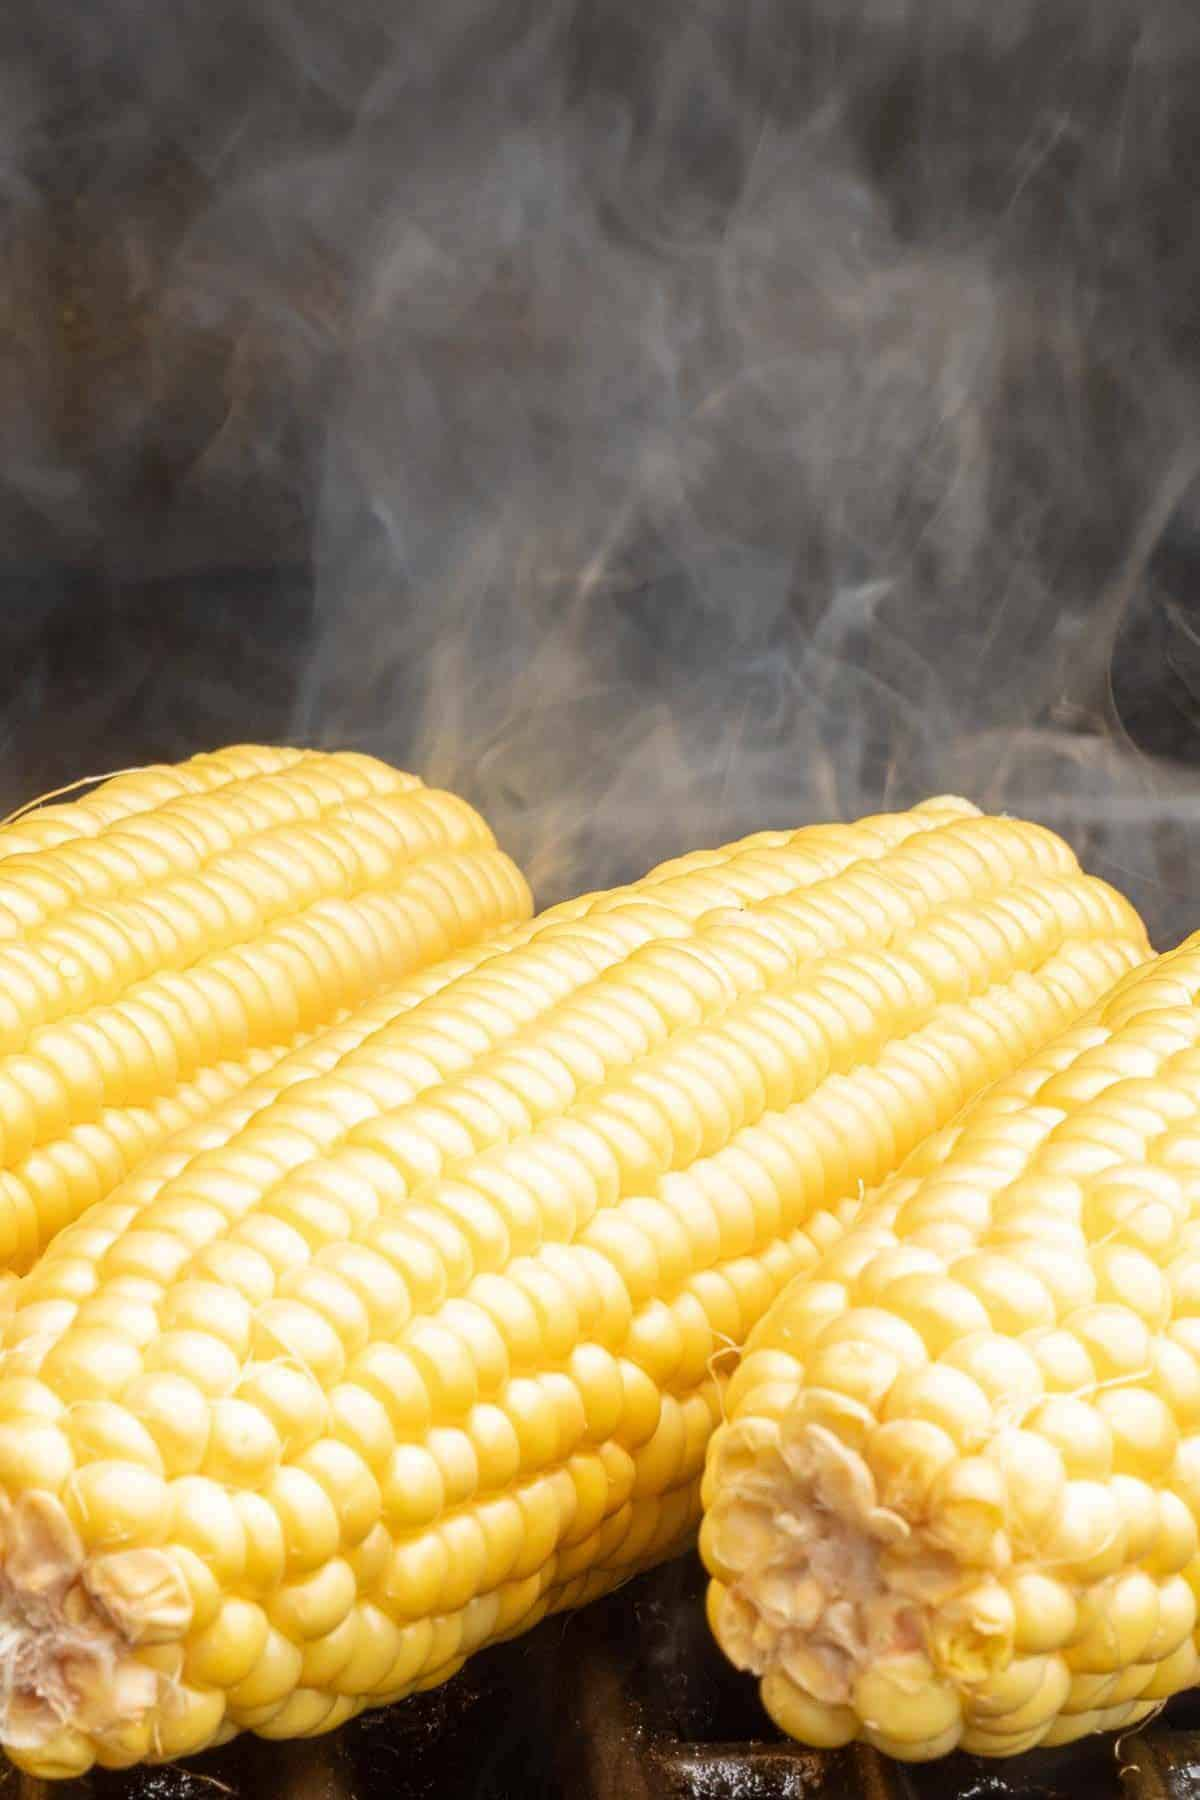 Grilled corn on the cob on a hot grill, smoke rising between the ears.